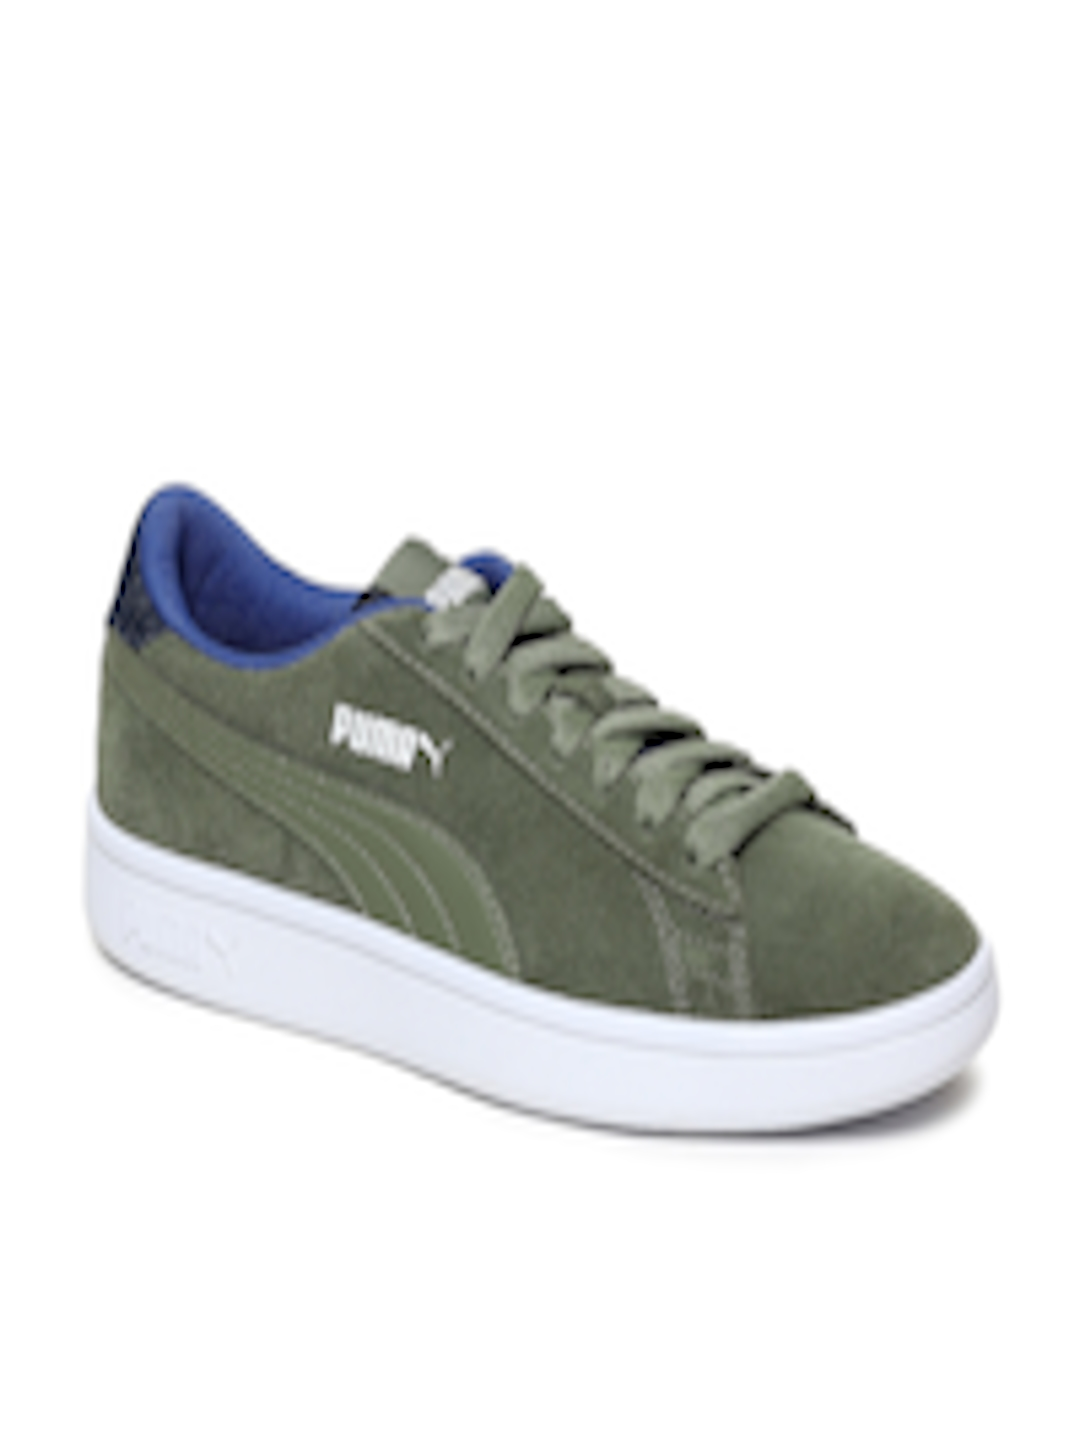 36f57eb473 Buy Puma Kids Olive Green Smash V2 DNM Jr Suede Sneakers - - Footwear for  Unisex